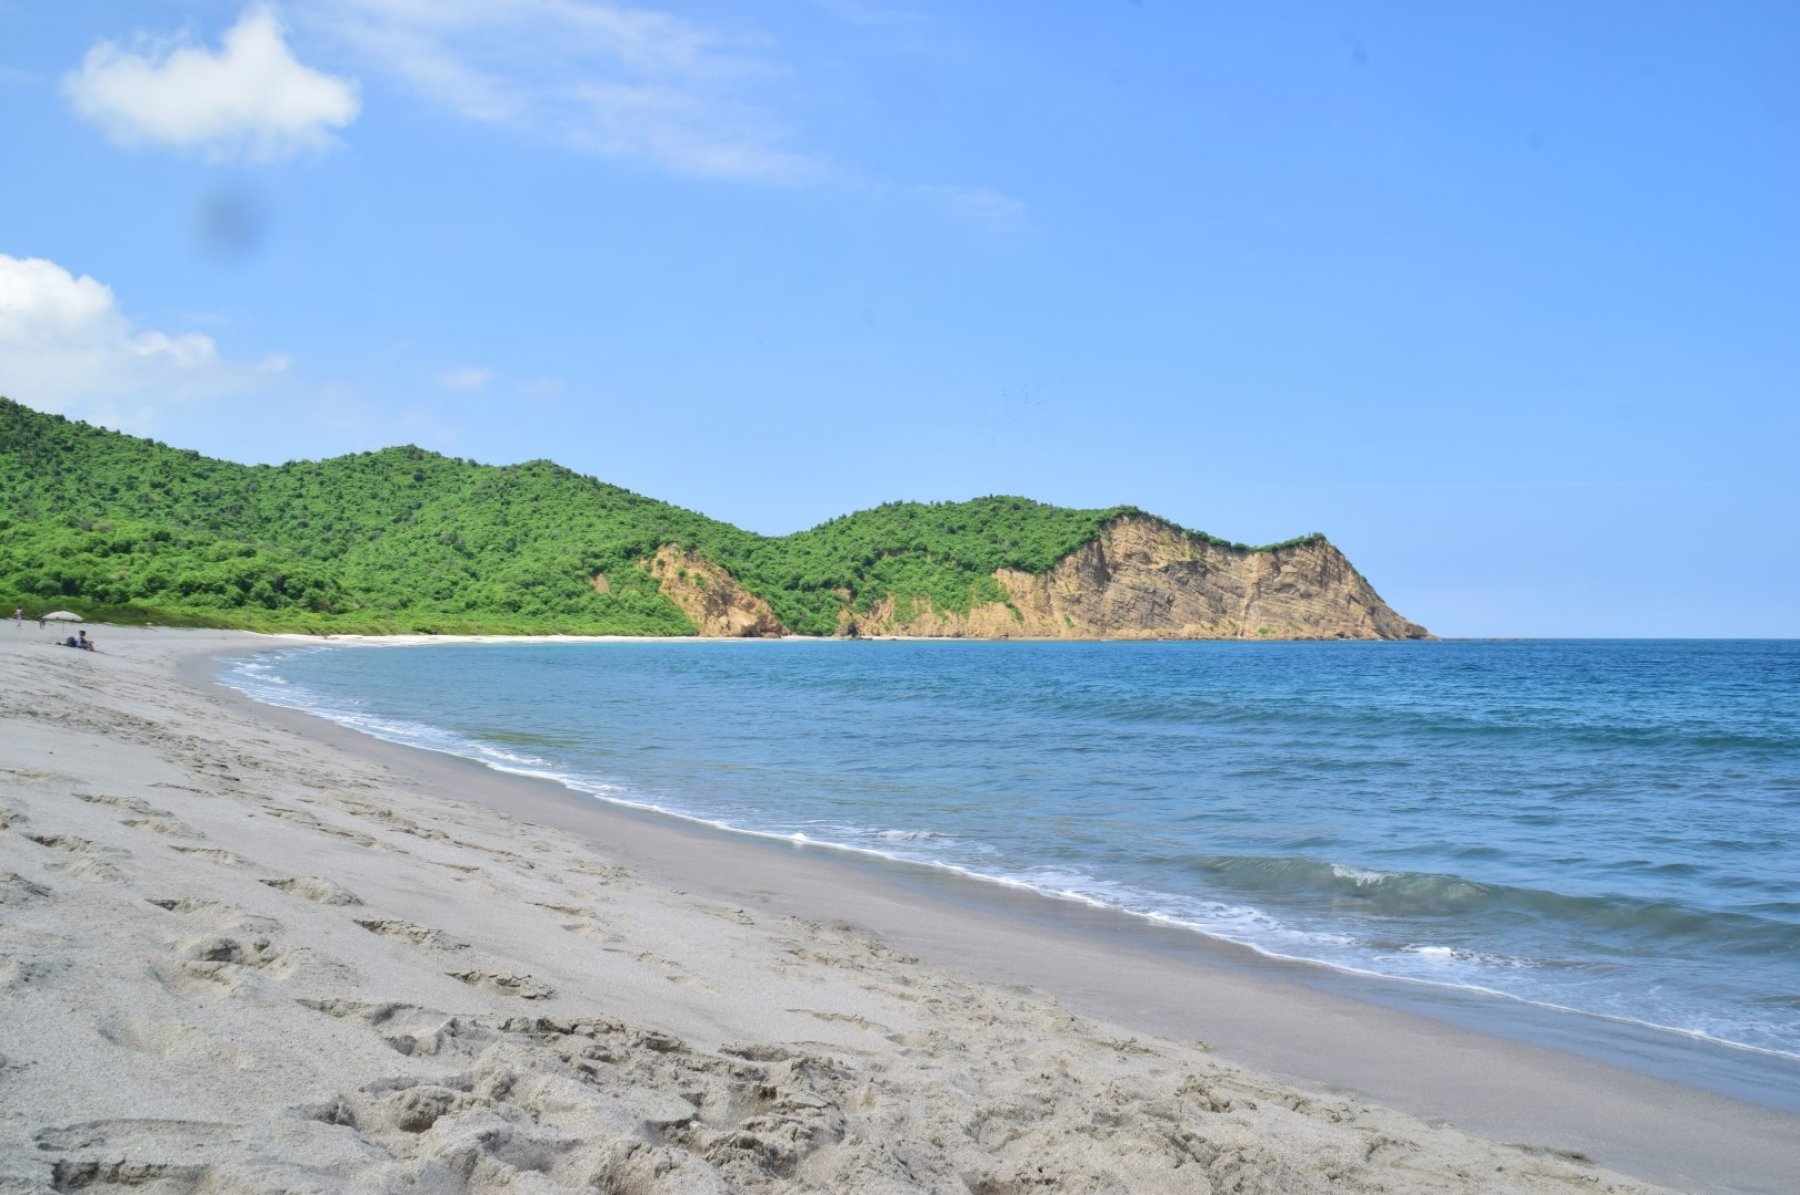 Los Frailes Beach 15 minutes from Agua Blanca Community